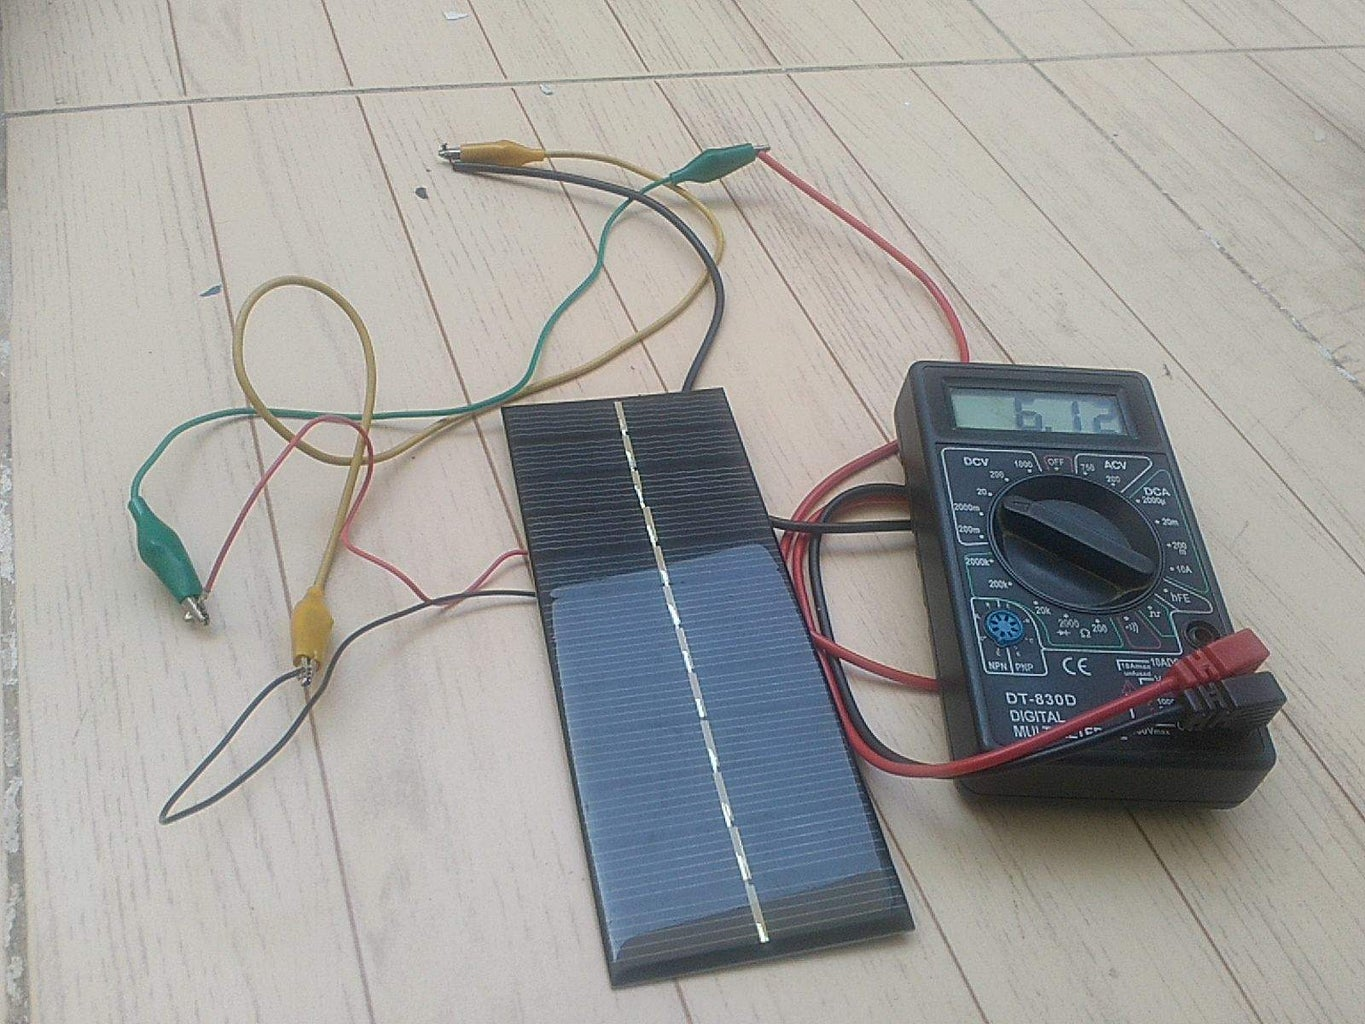 Solder Wires Into Solar Panel and Open the Charger